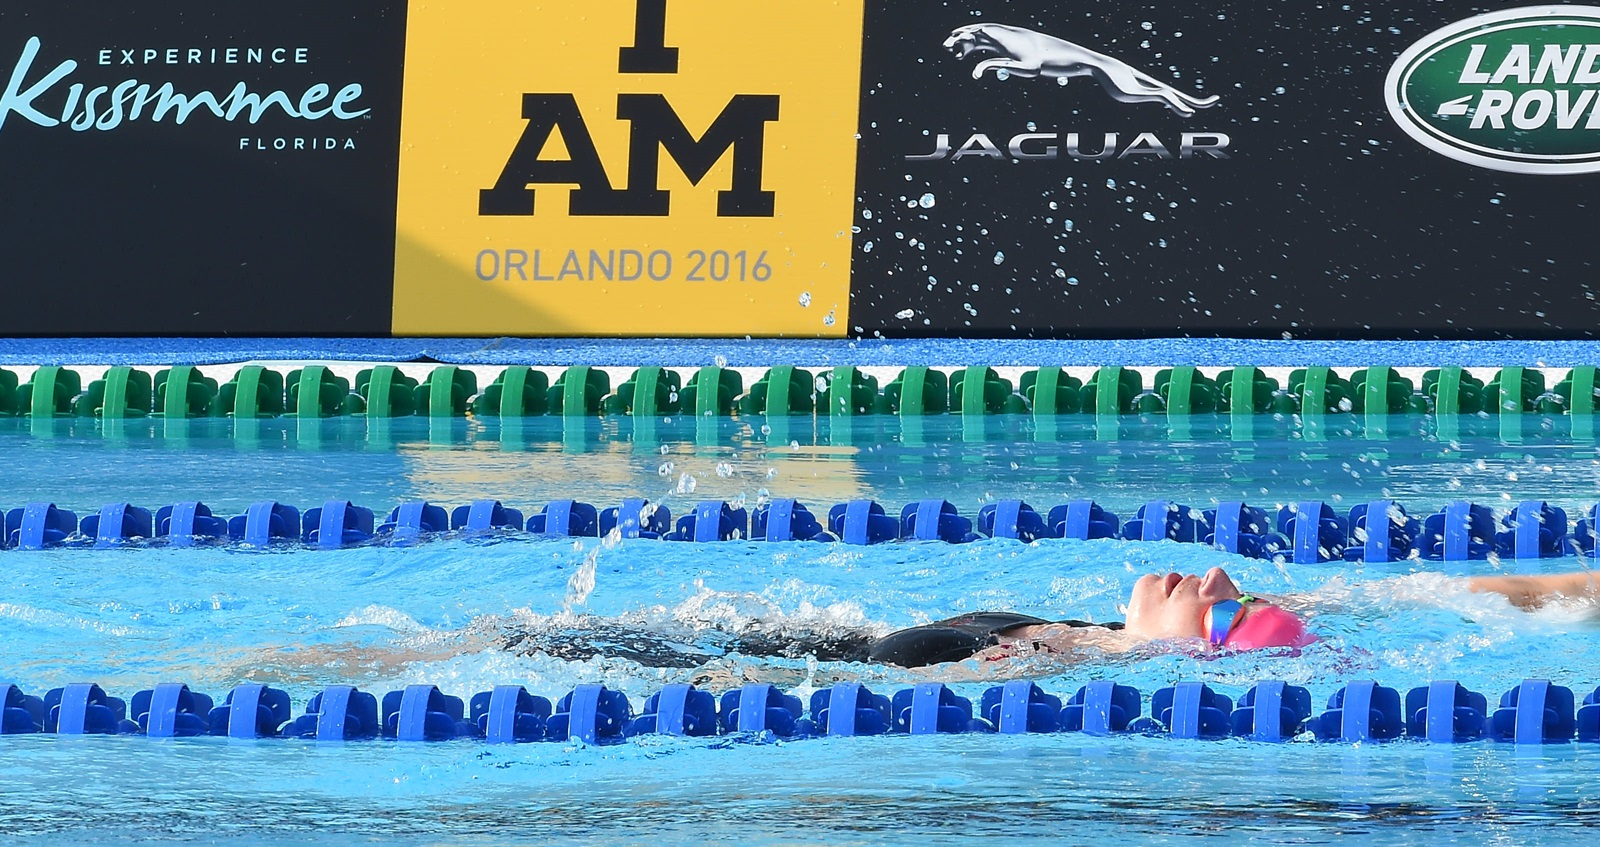 Anna competing in the pool at the Invictus Games 2016